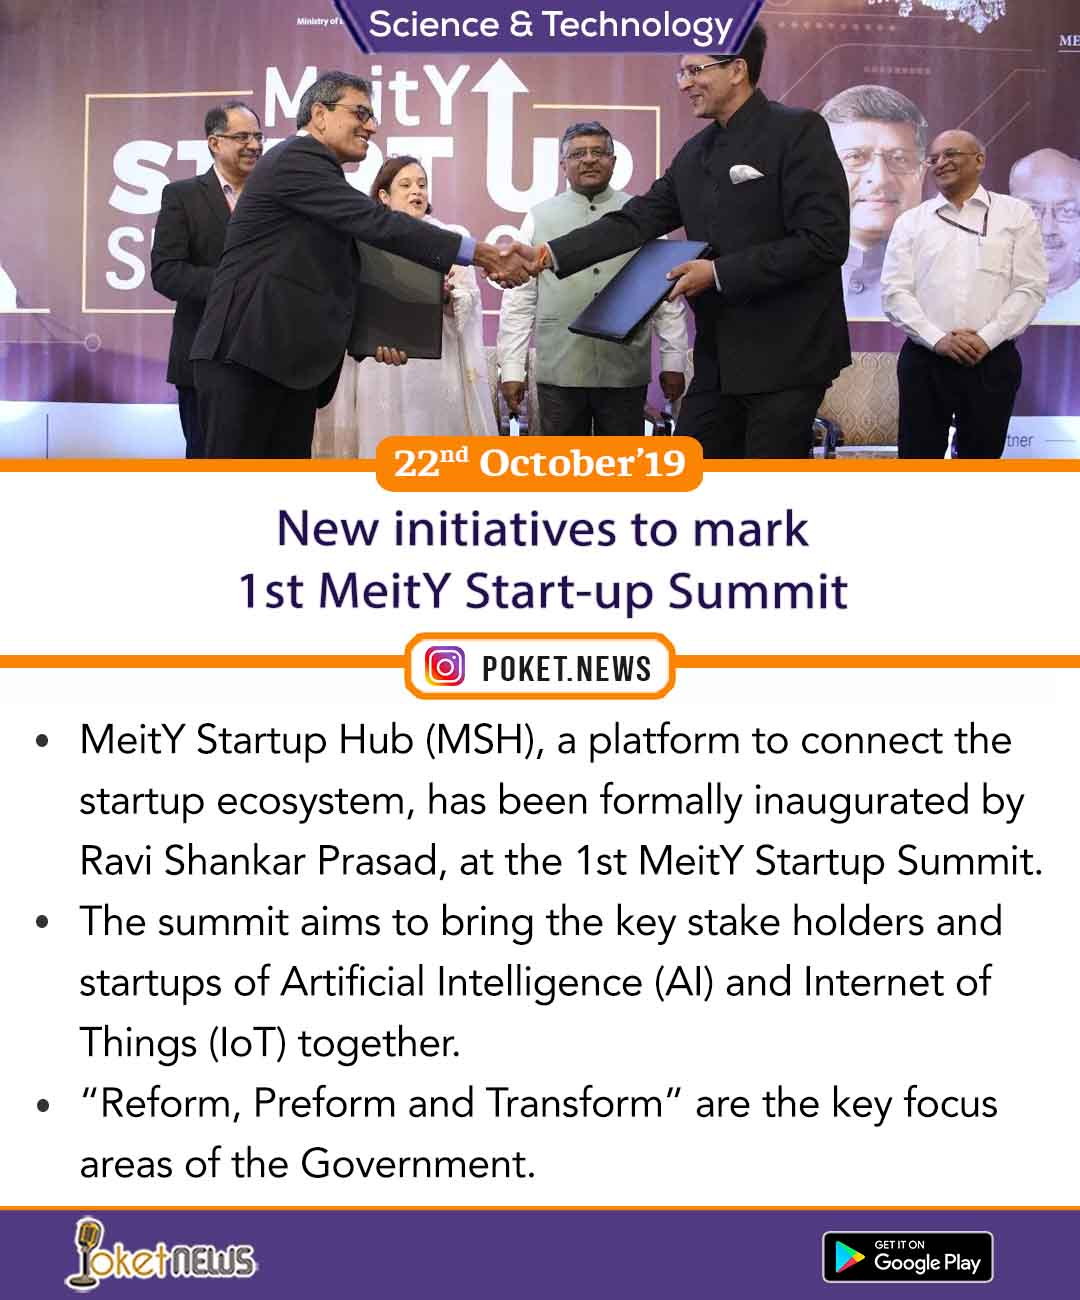 New initiatives to mark 1st MeitY Start-up Summit